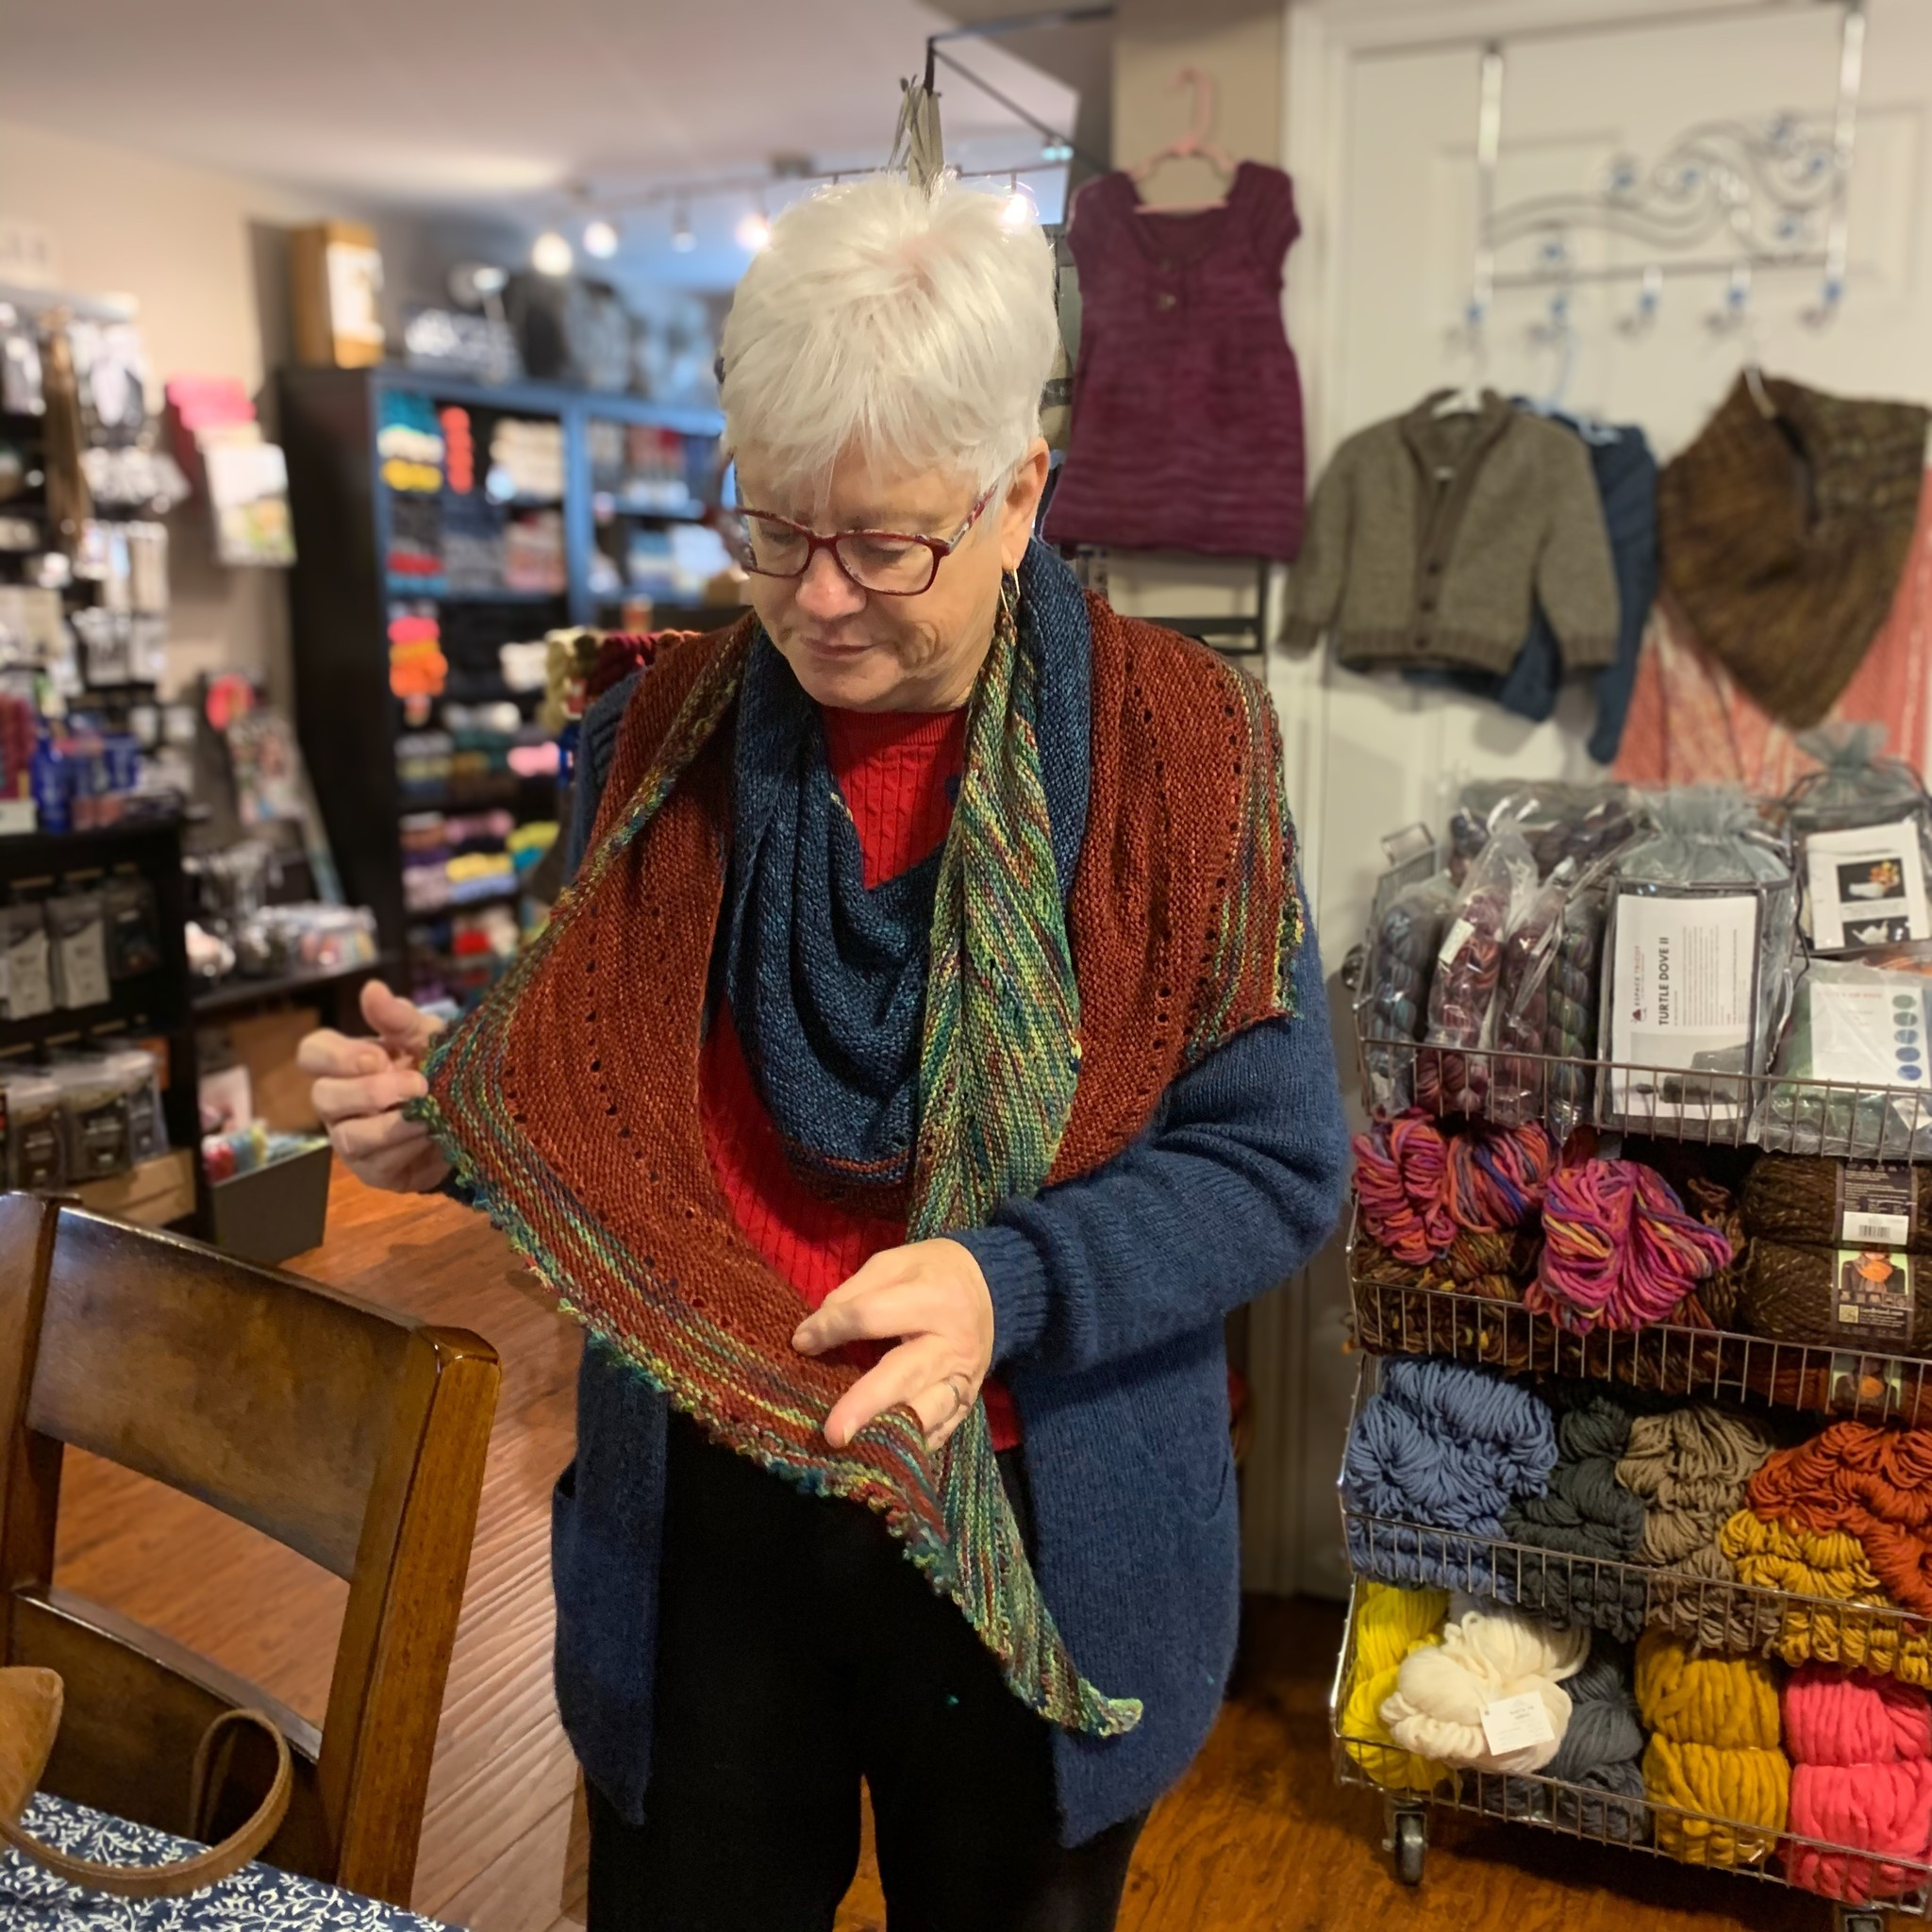 Friday, January 17, 2020, Issue 130: What is on your needles?